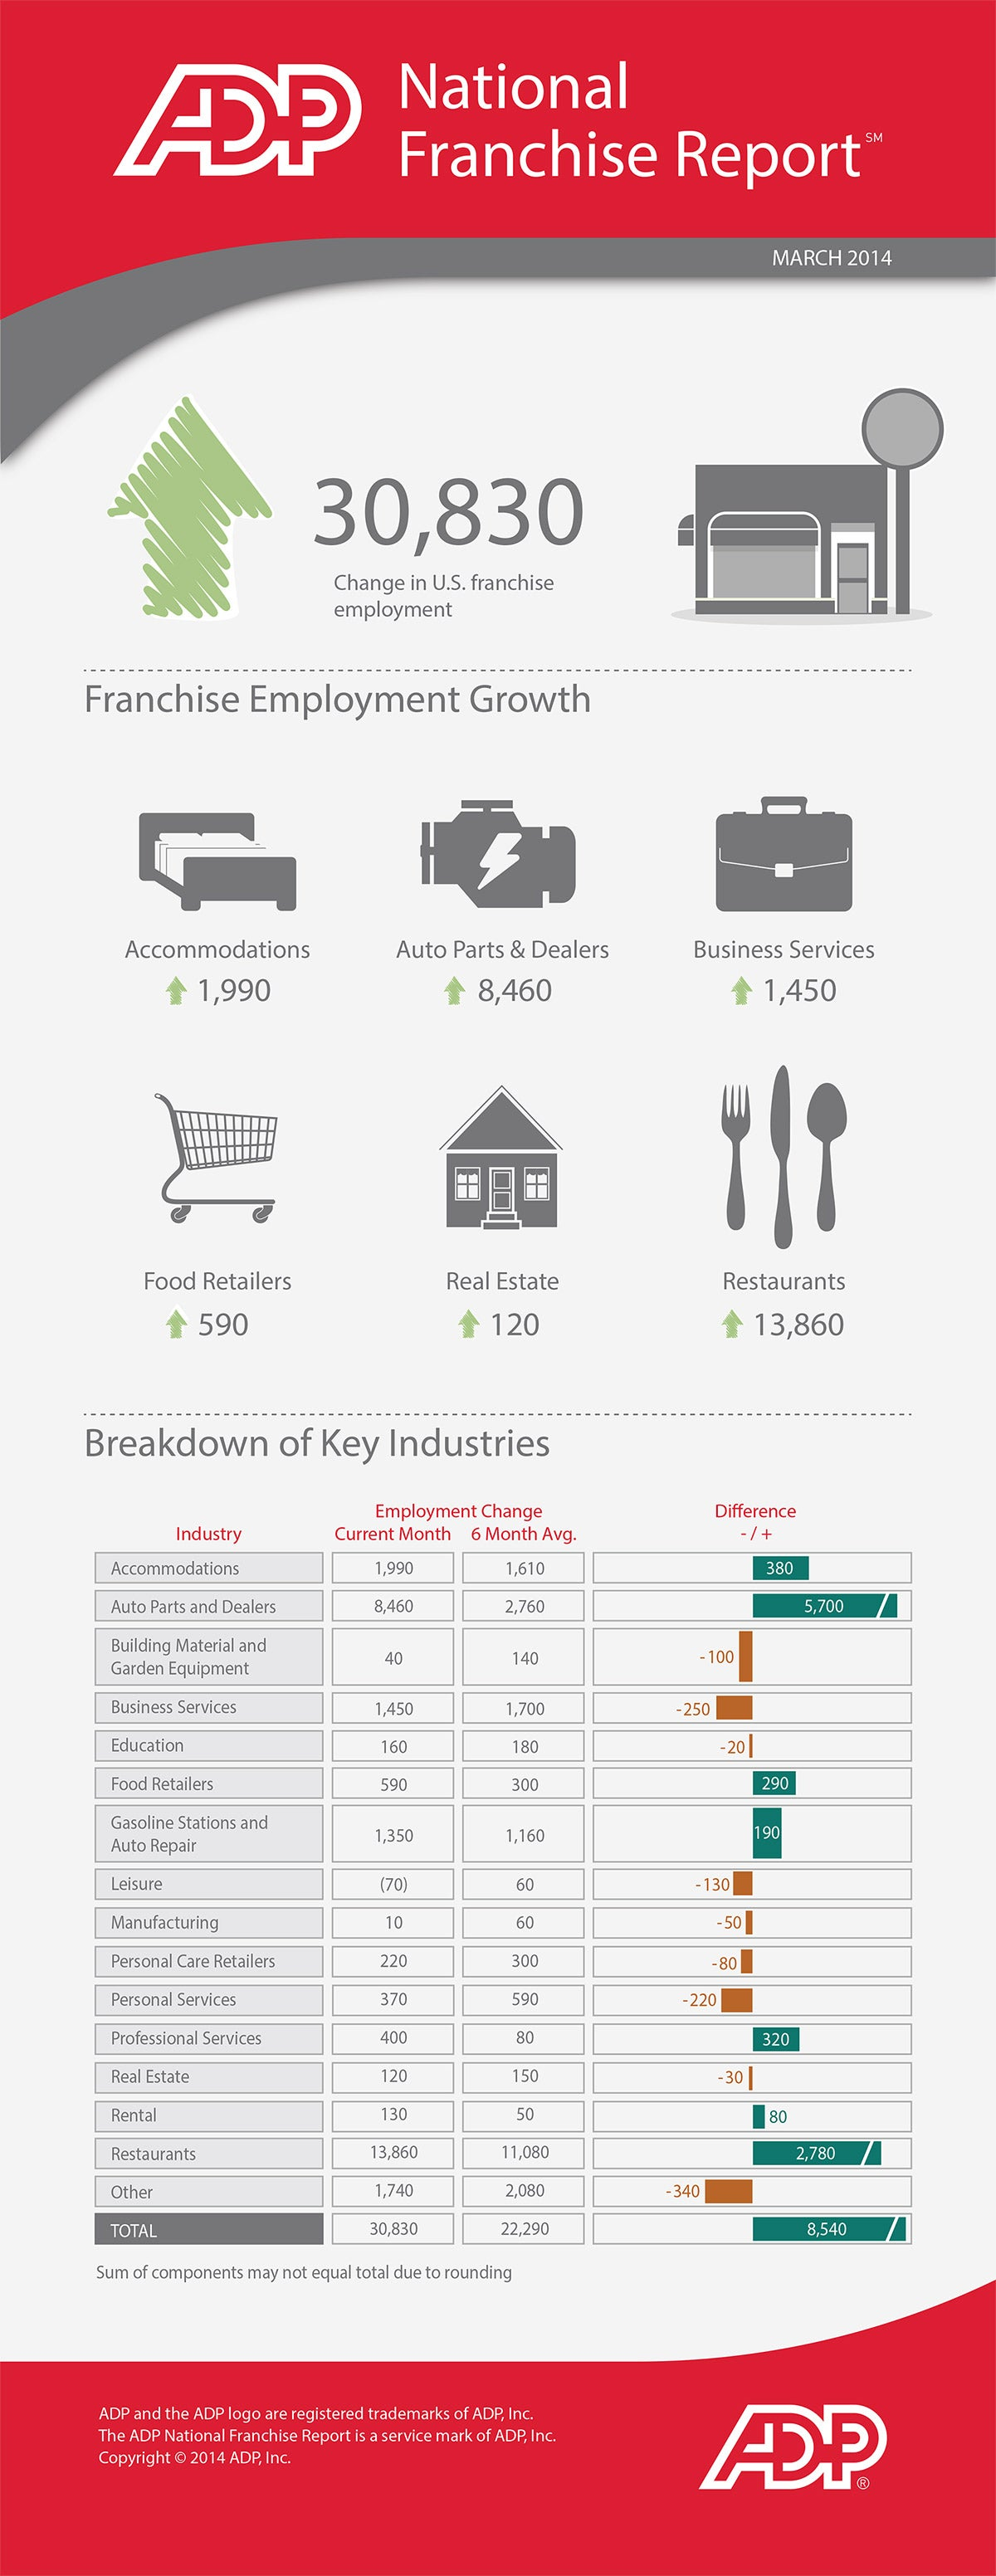 Restaurant Job Growth Rebounds in March (Infographic)